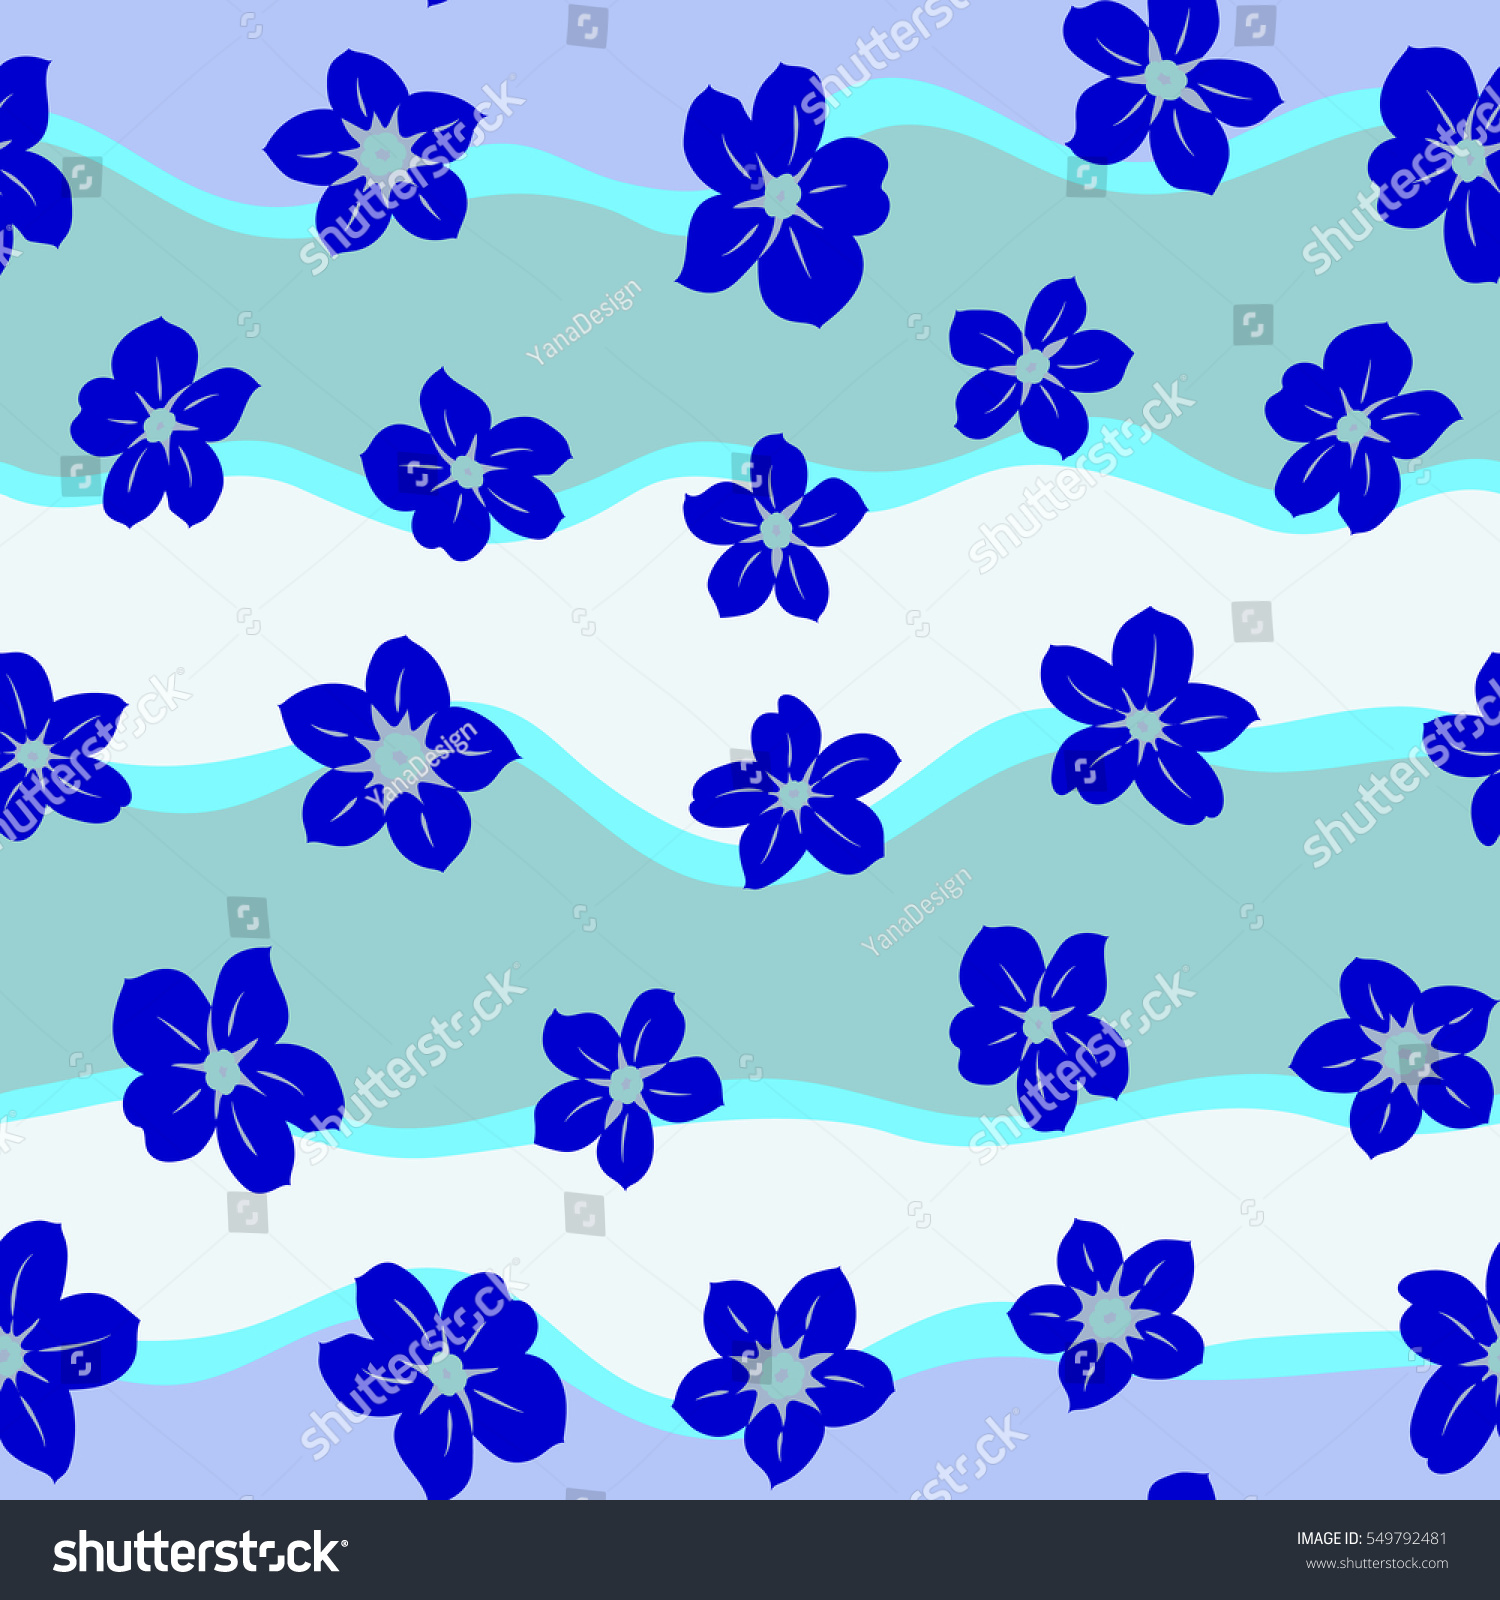 Elegant Seamless Pattern With Decorative Flowers In Blue And Pink